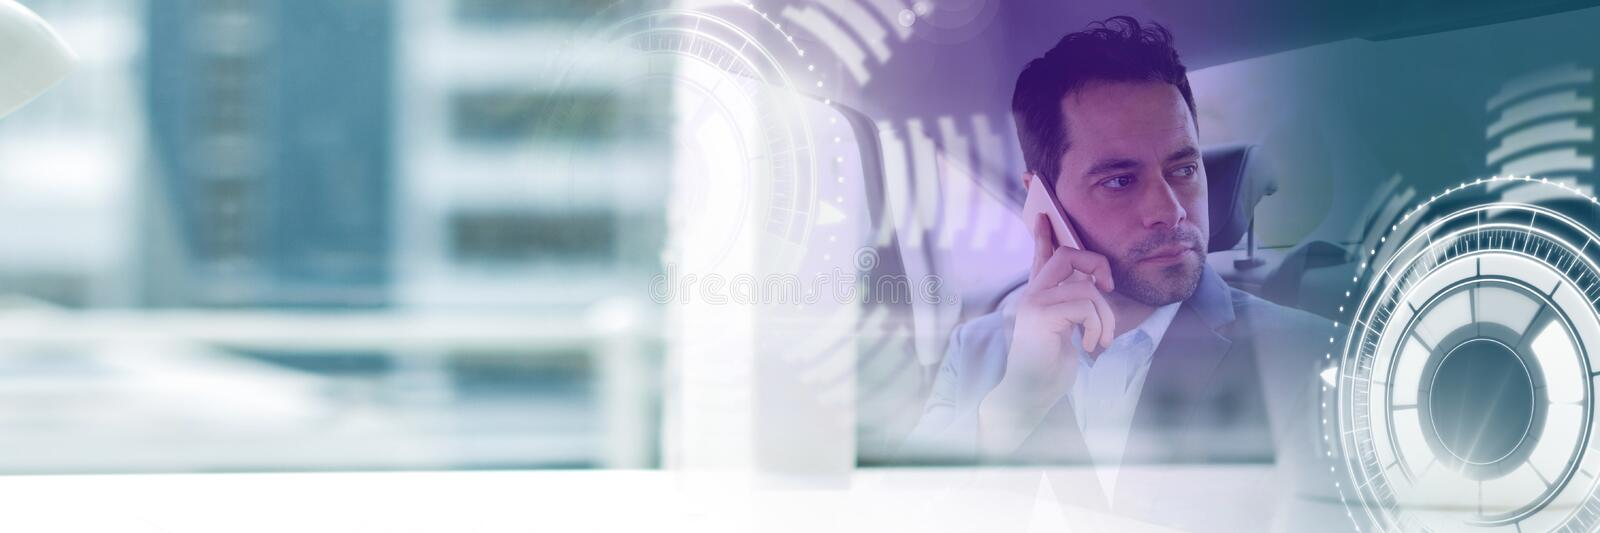 Man in driverless autonomous car with heads up display interface and building transition royalty free stock photos